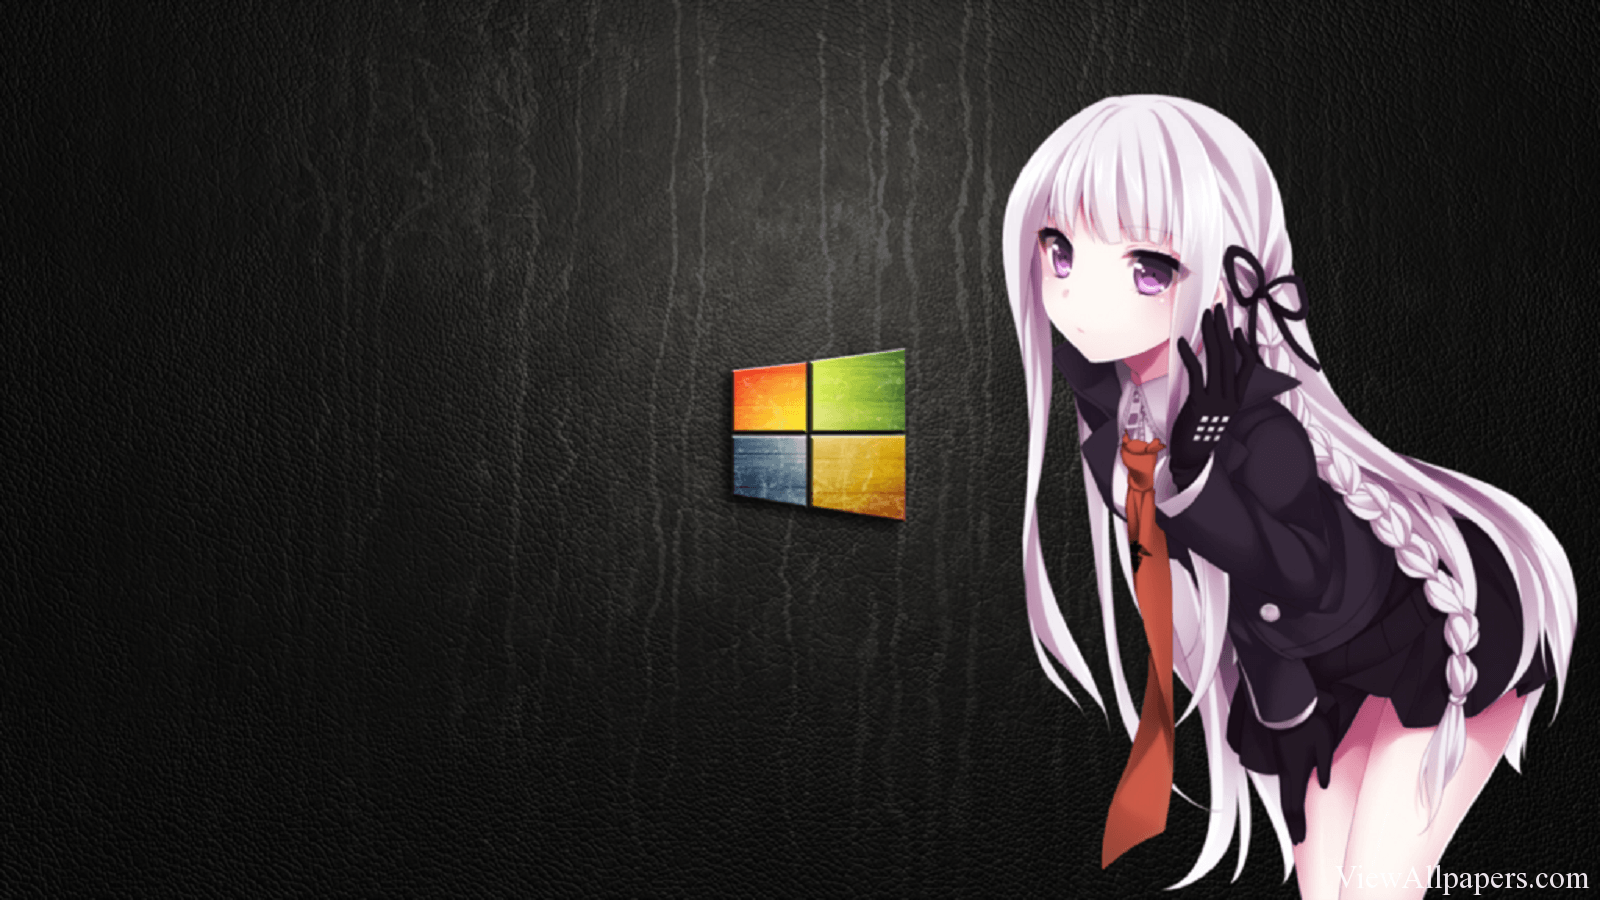 1600x900 Anime Wallpaper For Windows | Image Wallpaper Collections